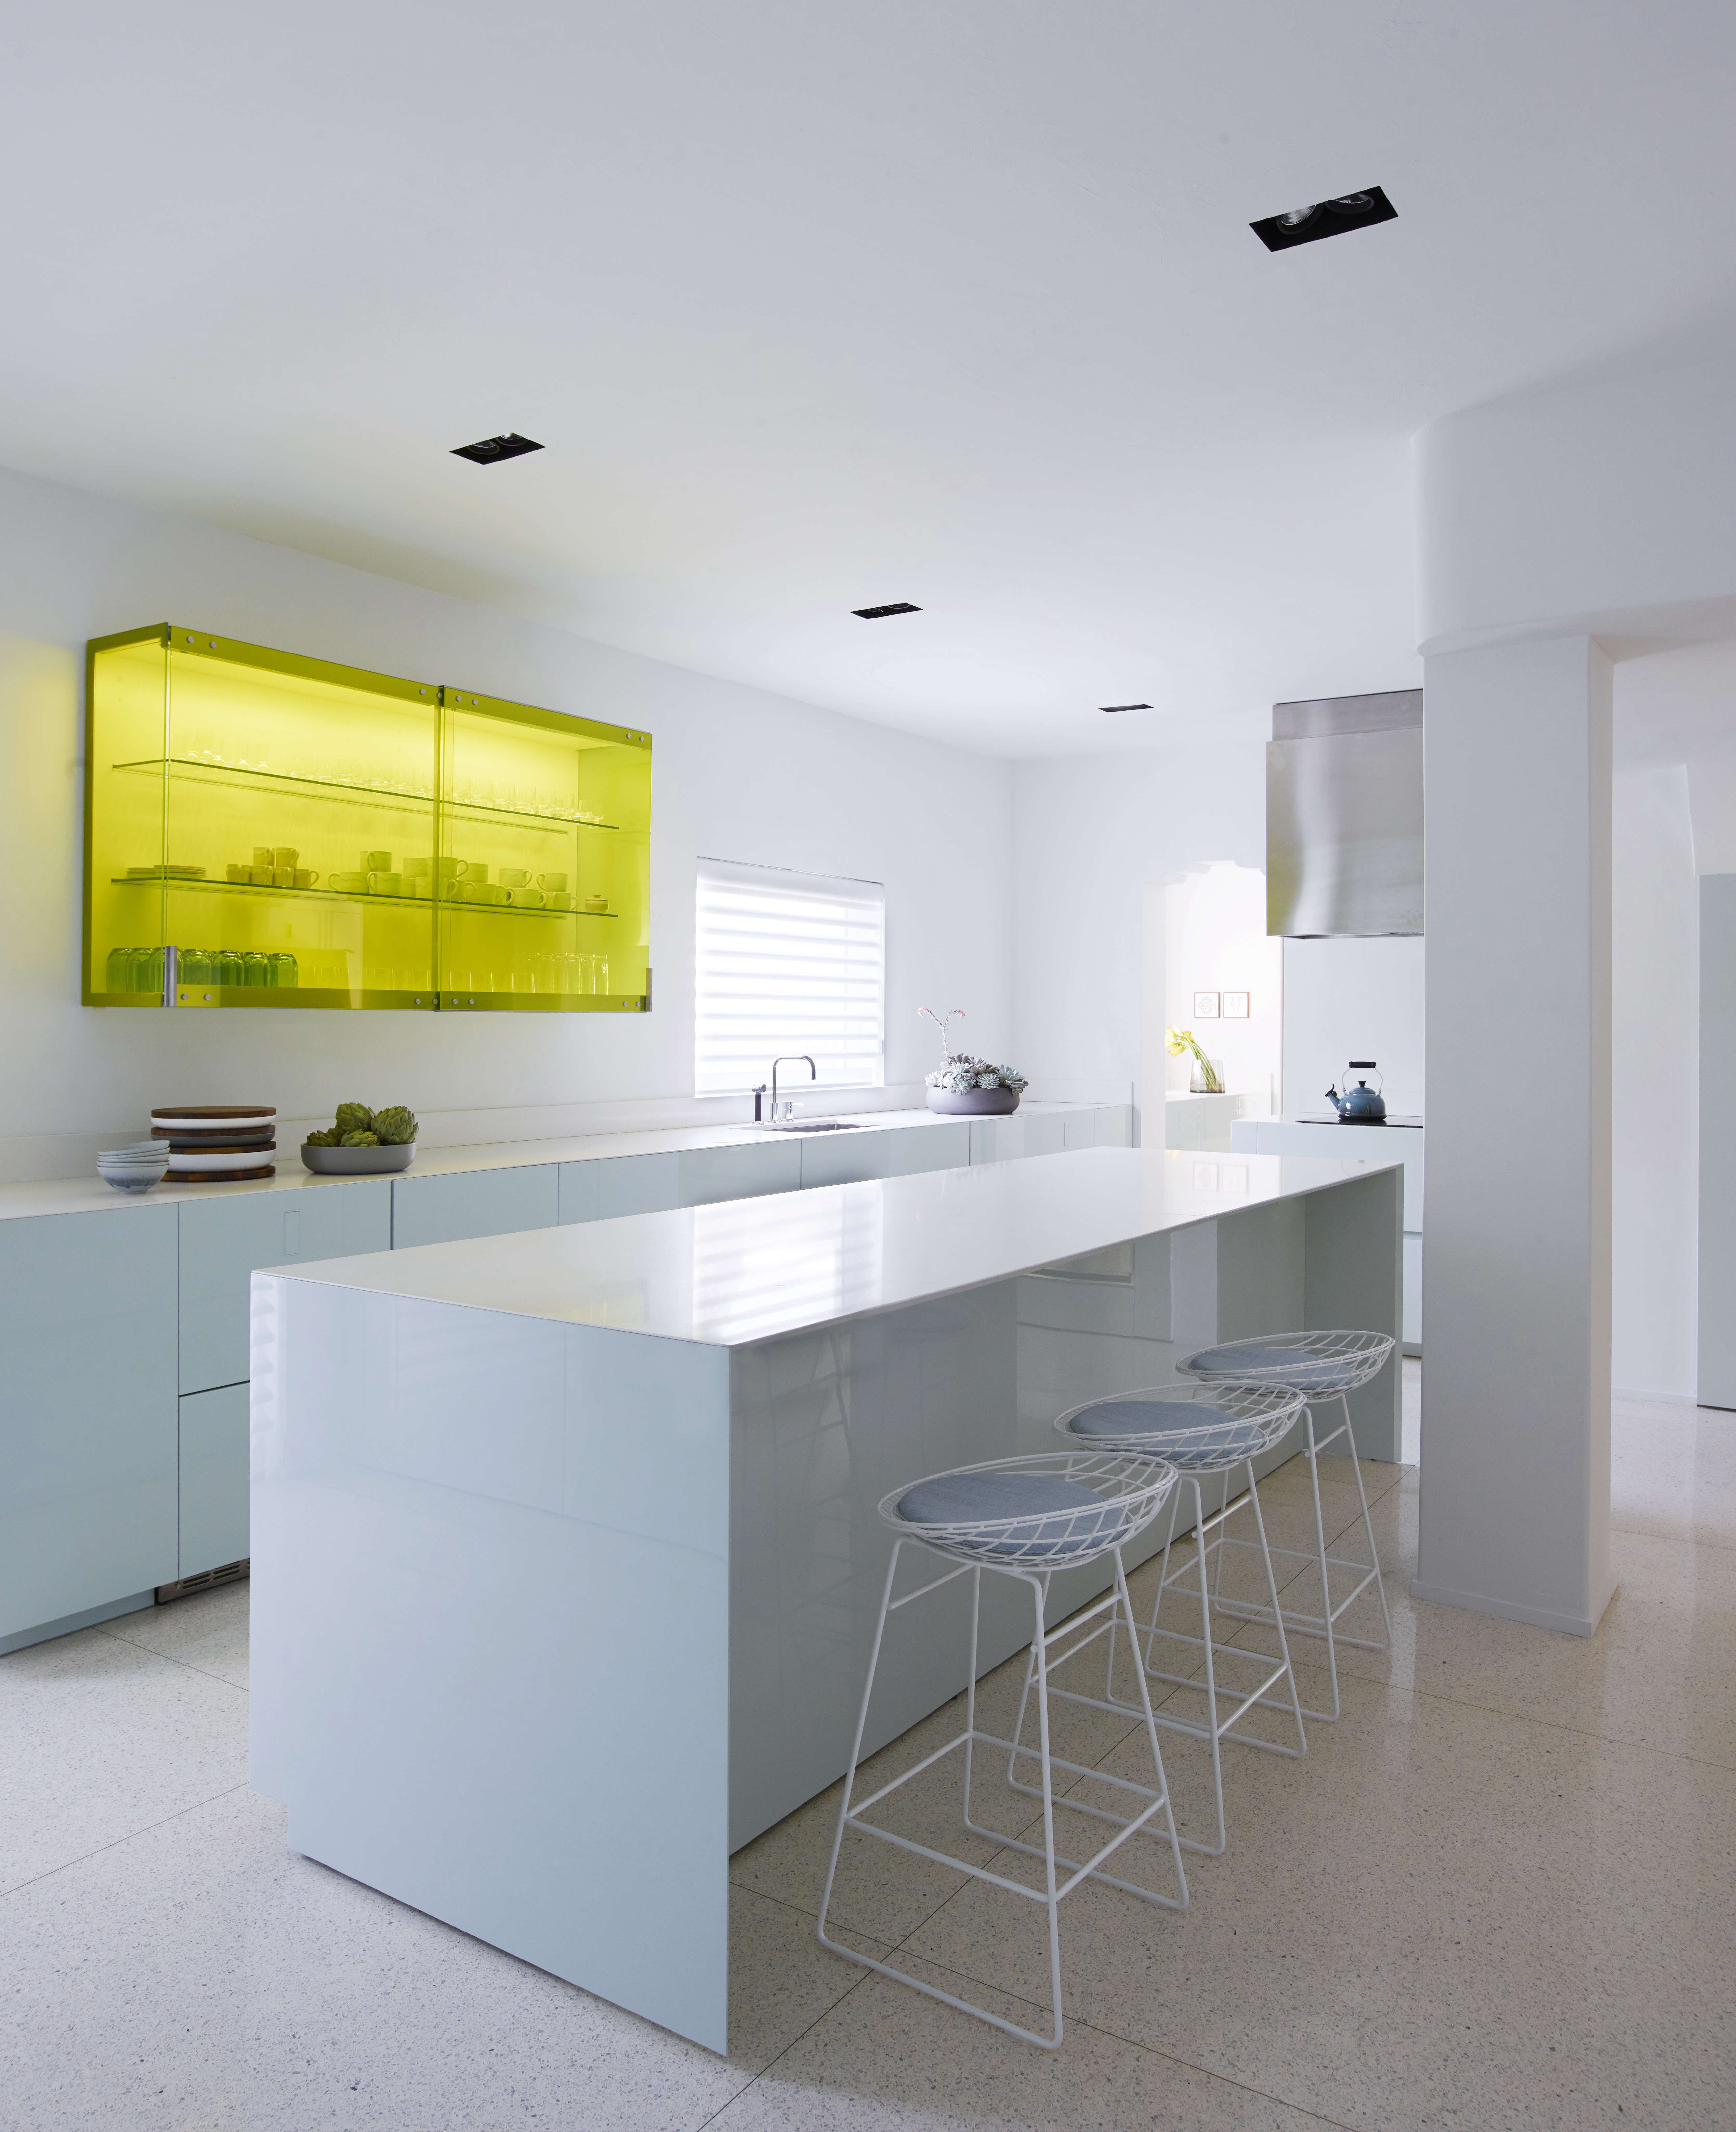 Modern in Miami At Home with a Worldly Contemporary Furniture Dealer Minimalist contemporary kitchen in a revived 1932 Miami villa belonging to contemporary furniture dealer Stephan Weishaupt of Avenue Road, Richard Powers photo | Remodelista